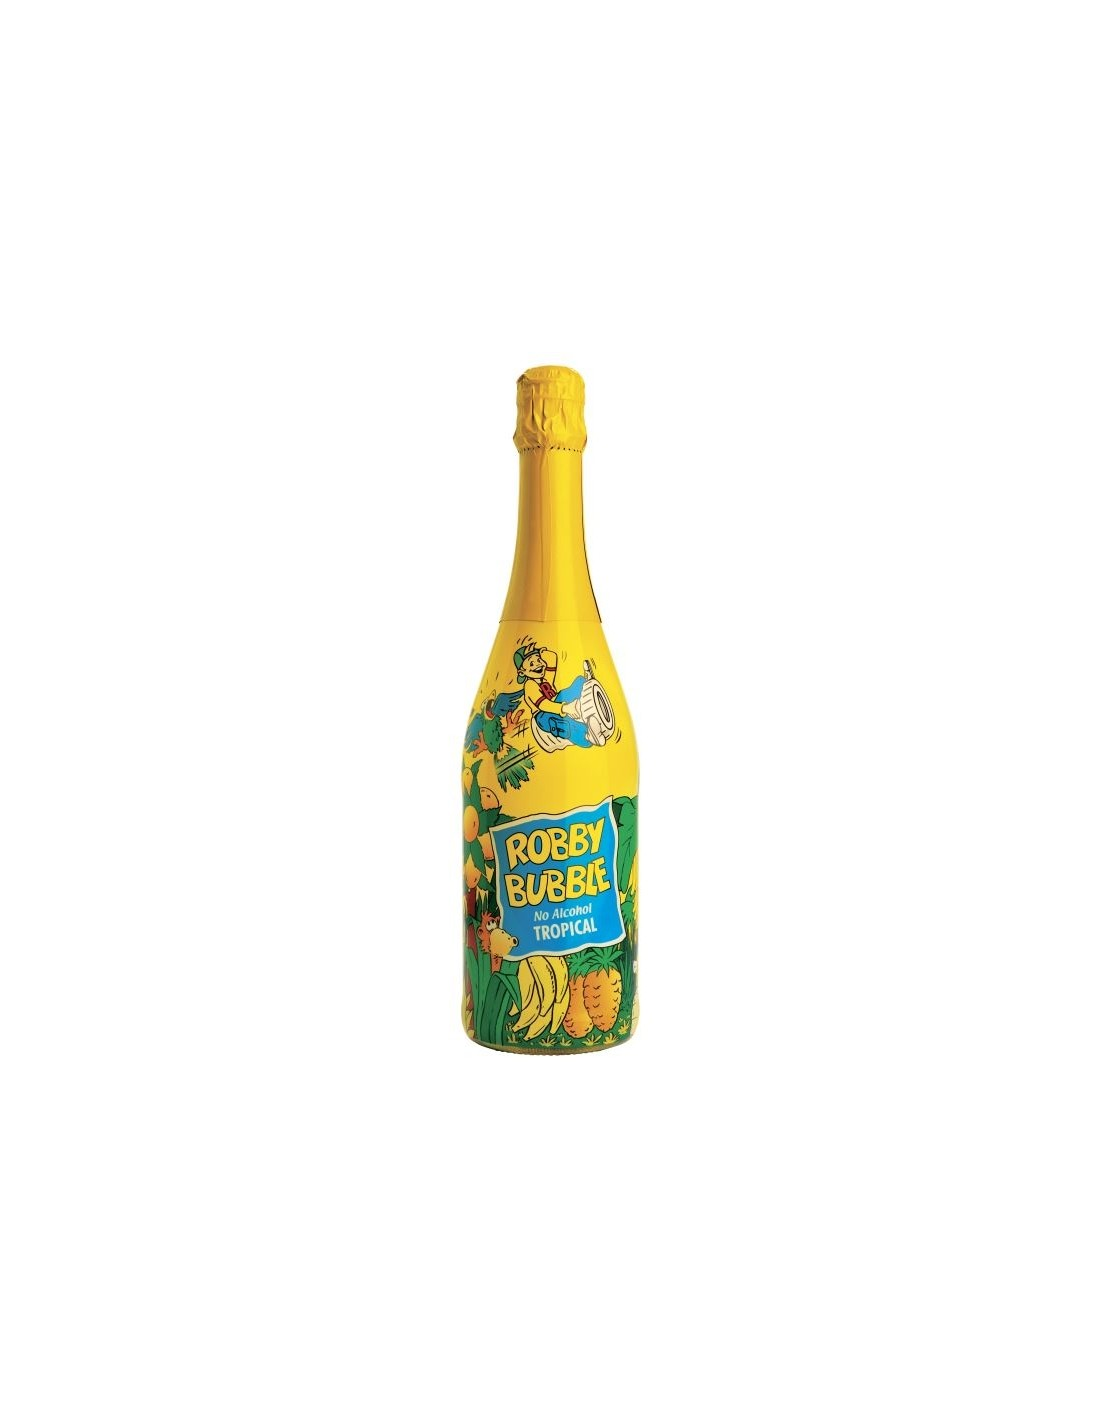 Sampanie pentru copii Robby Bubble tropical 0.75L, Germania